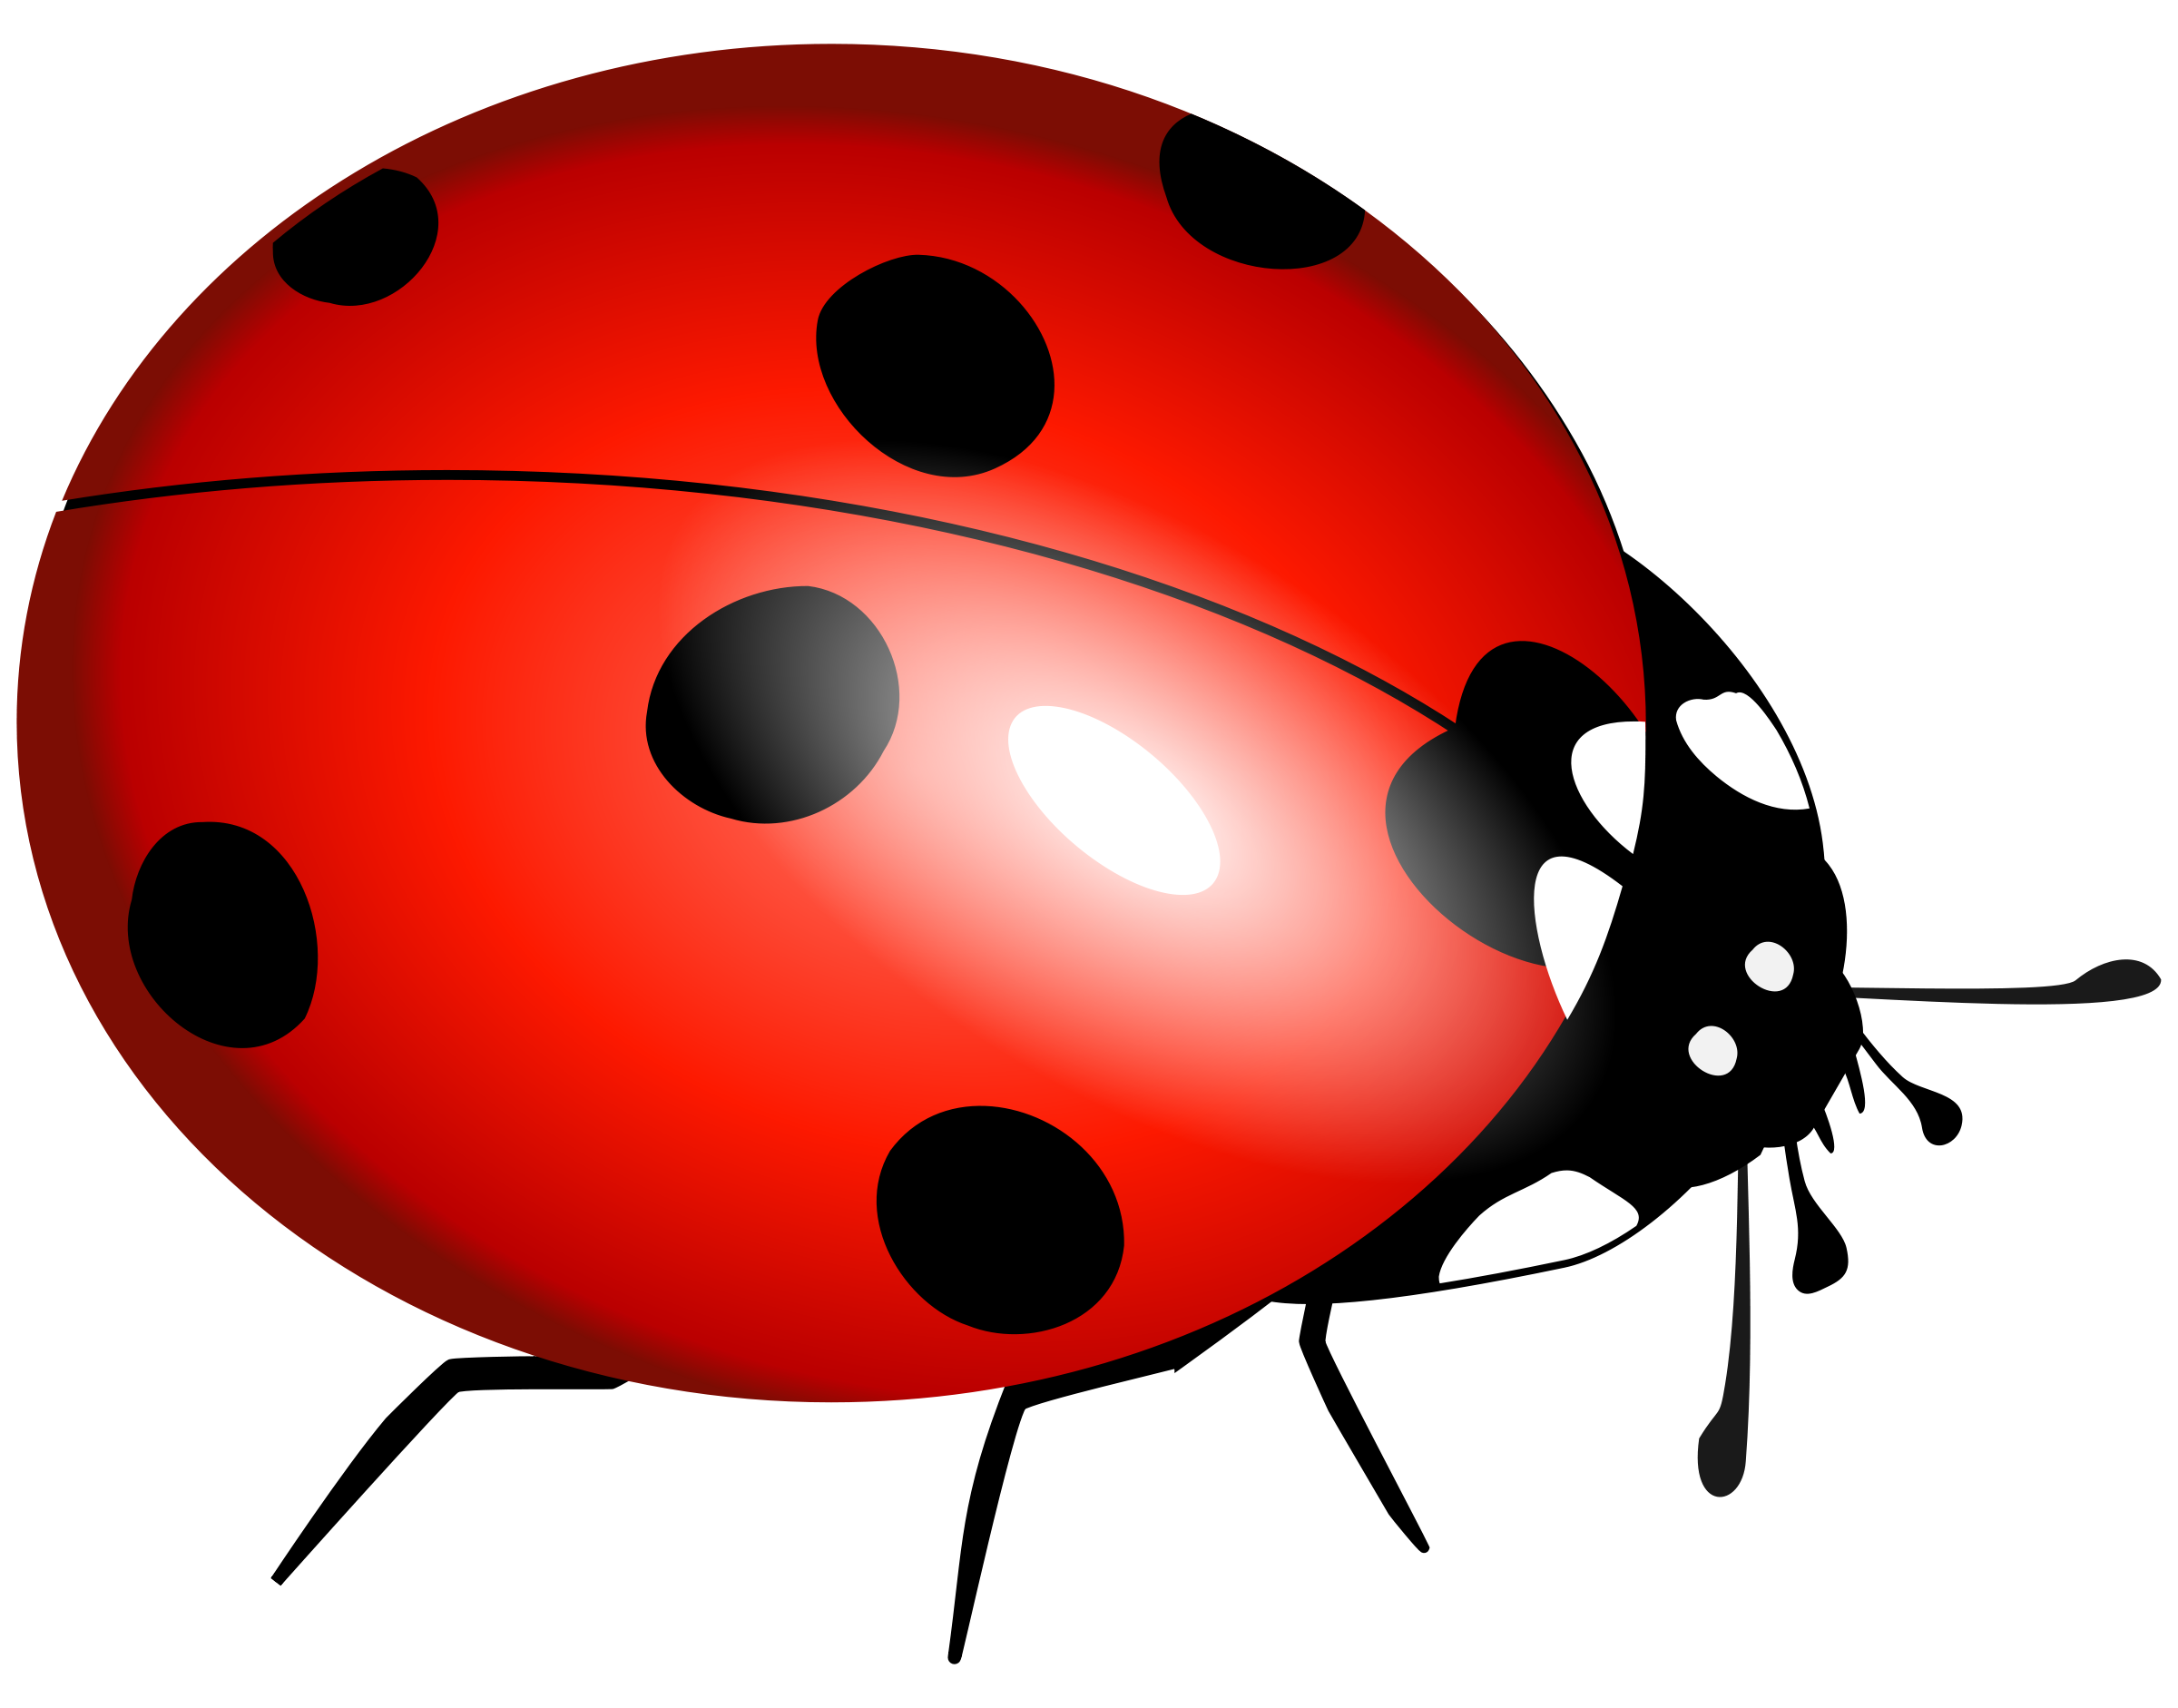 transparent ladybug leaf cartoon